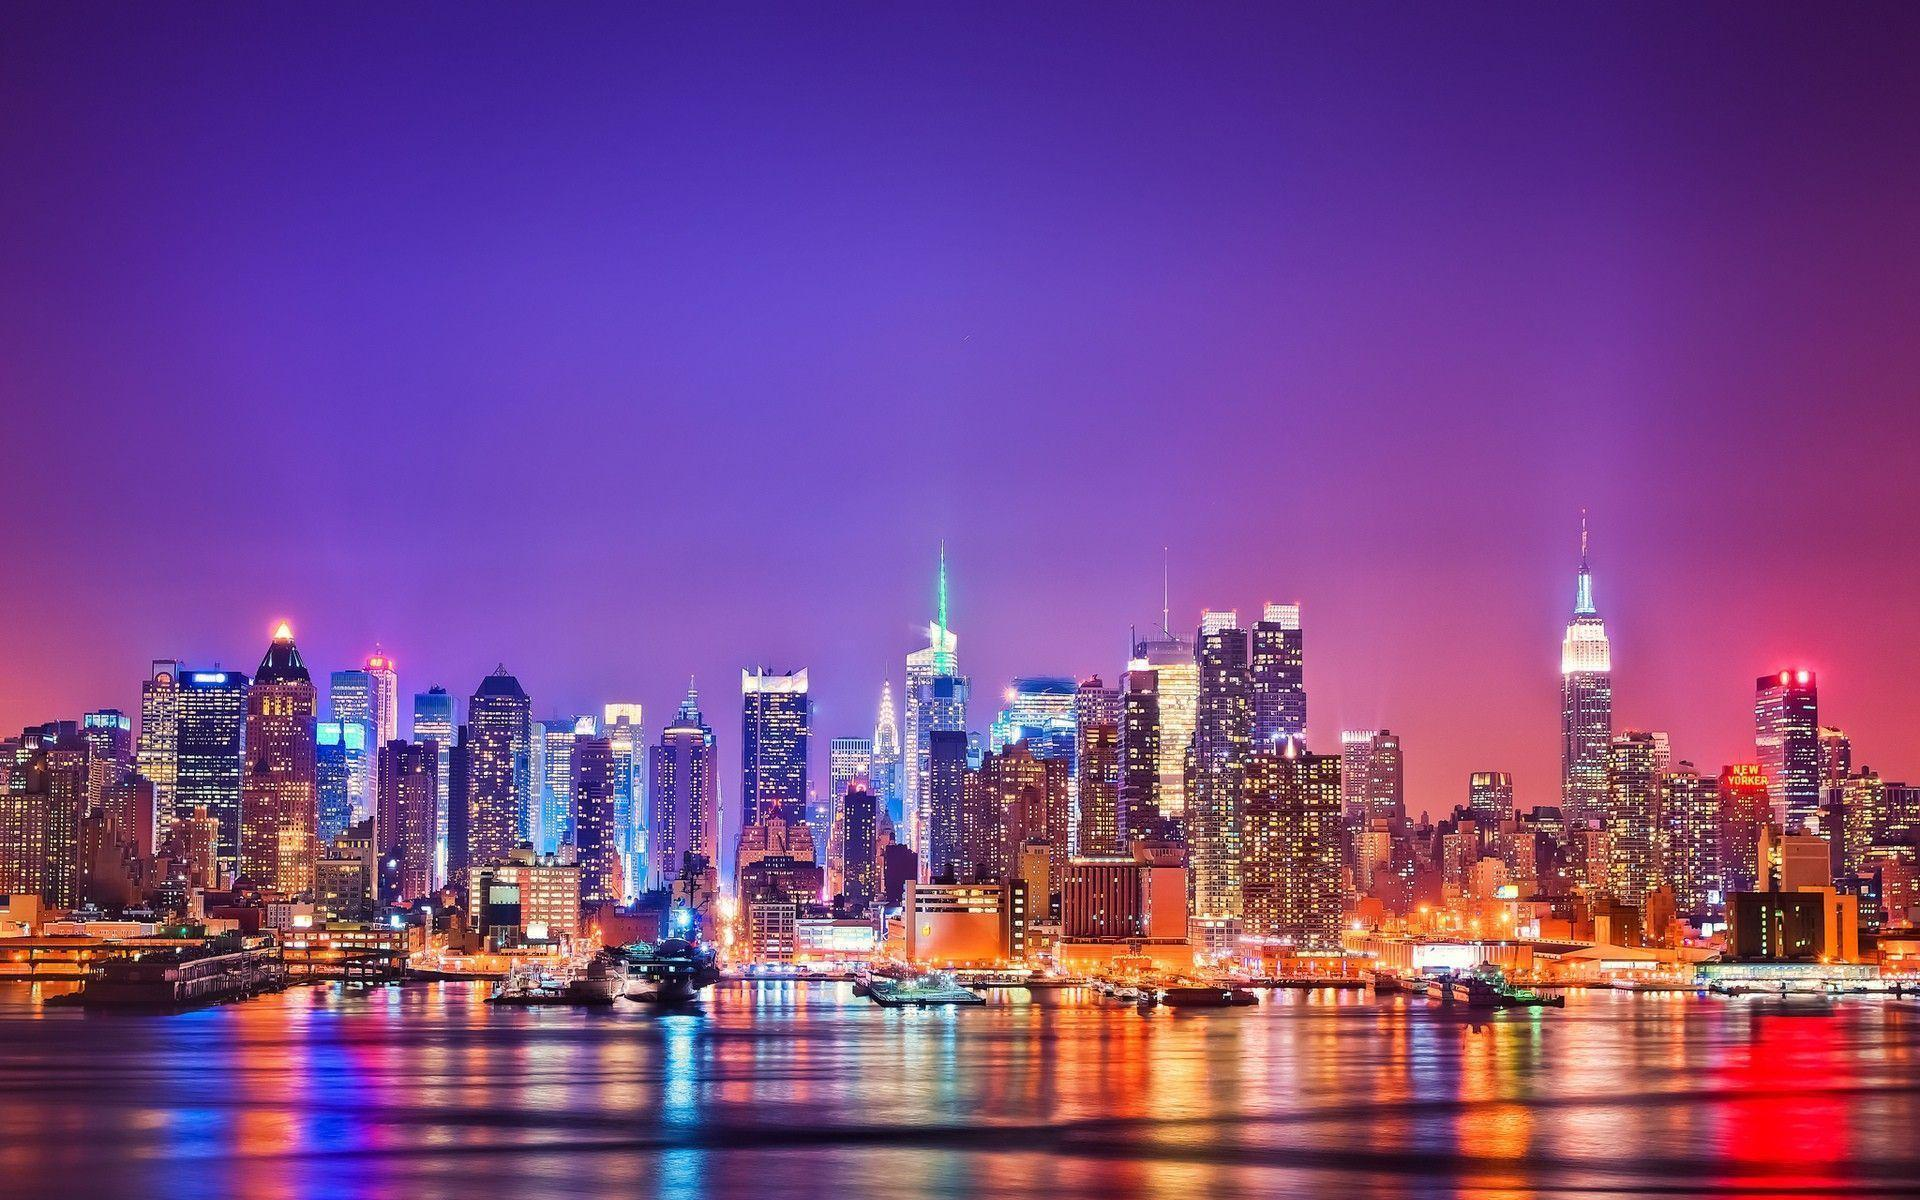 ny wallpaper, new york skyline wallpaper hd